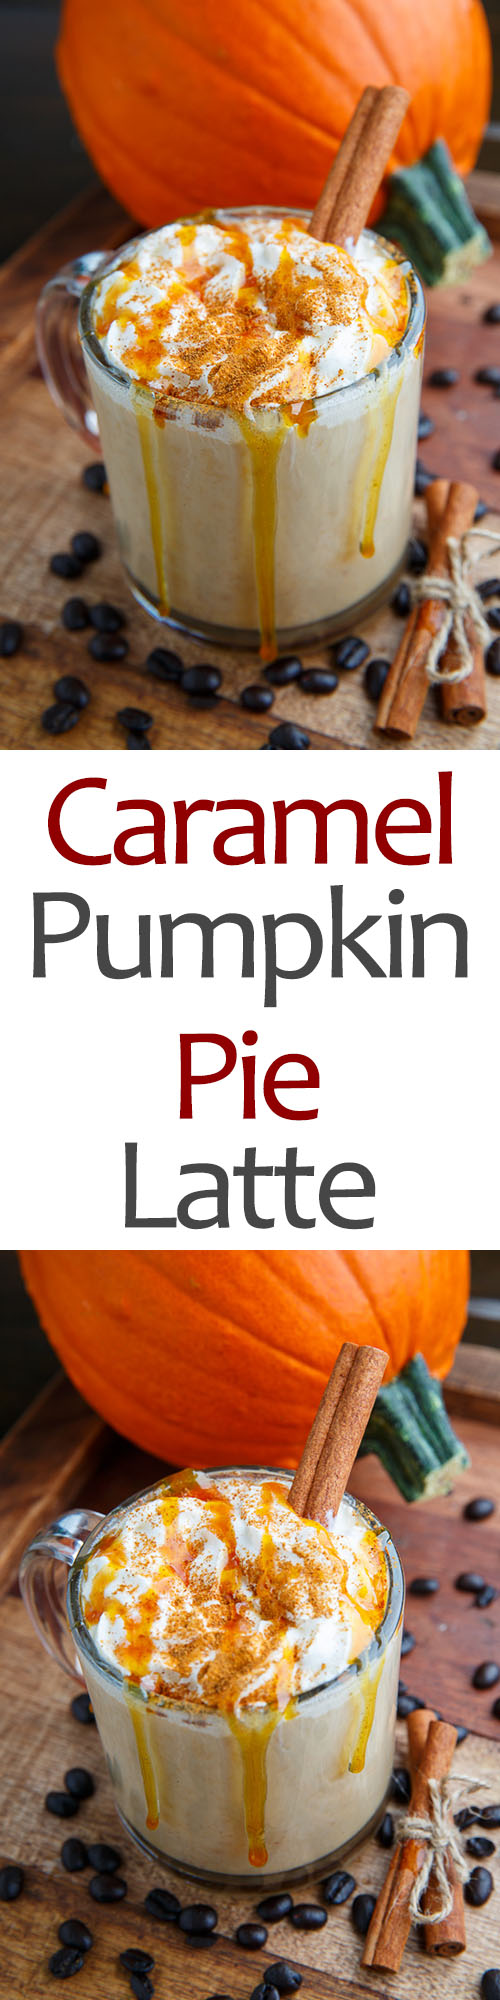 Caramel Pumpkin Pie Latte